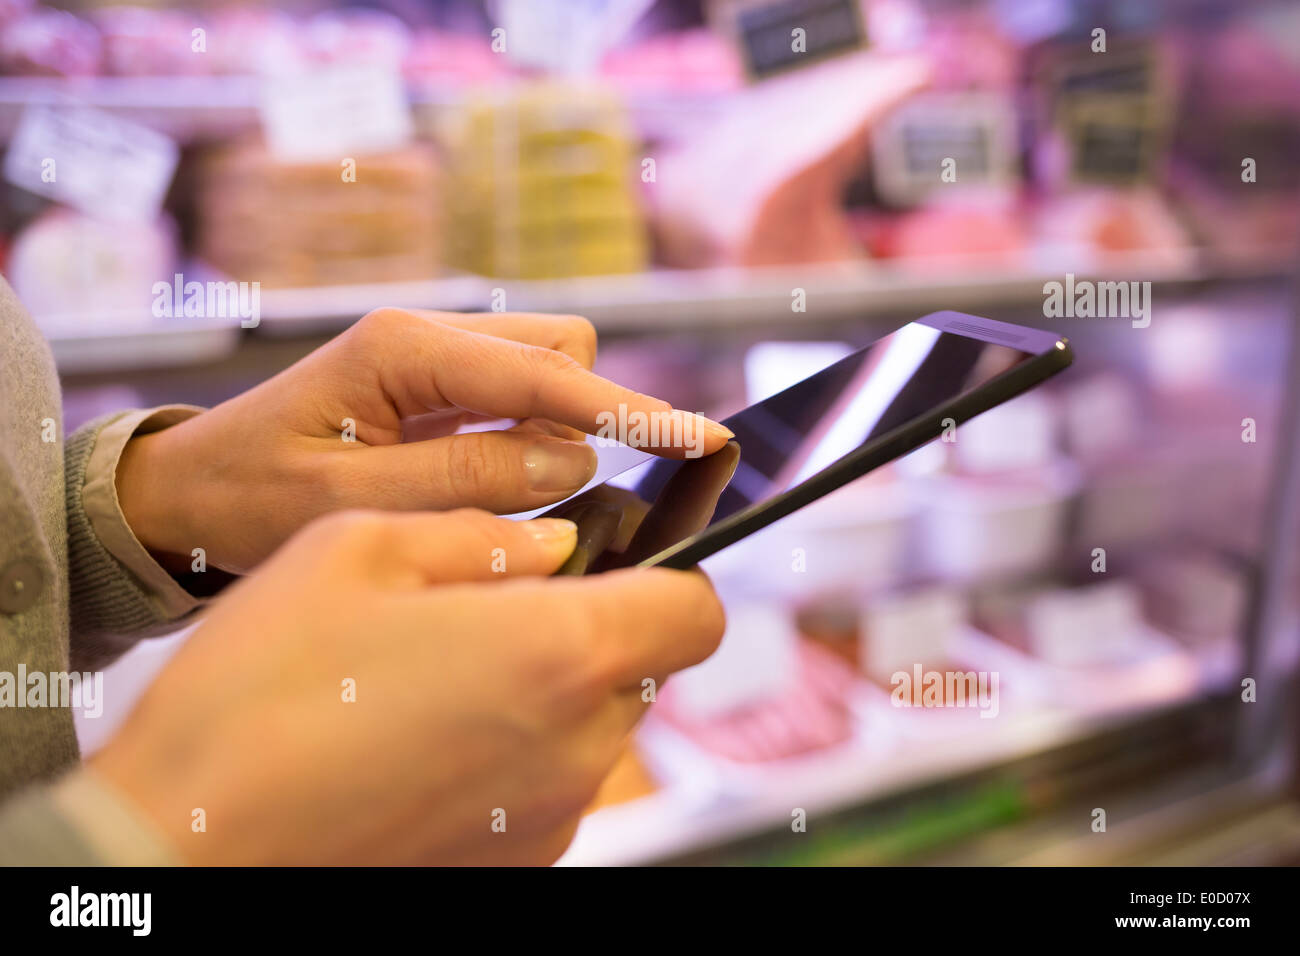 Femme cell phone store message sms Photo Stock